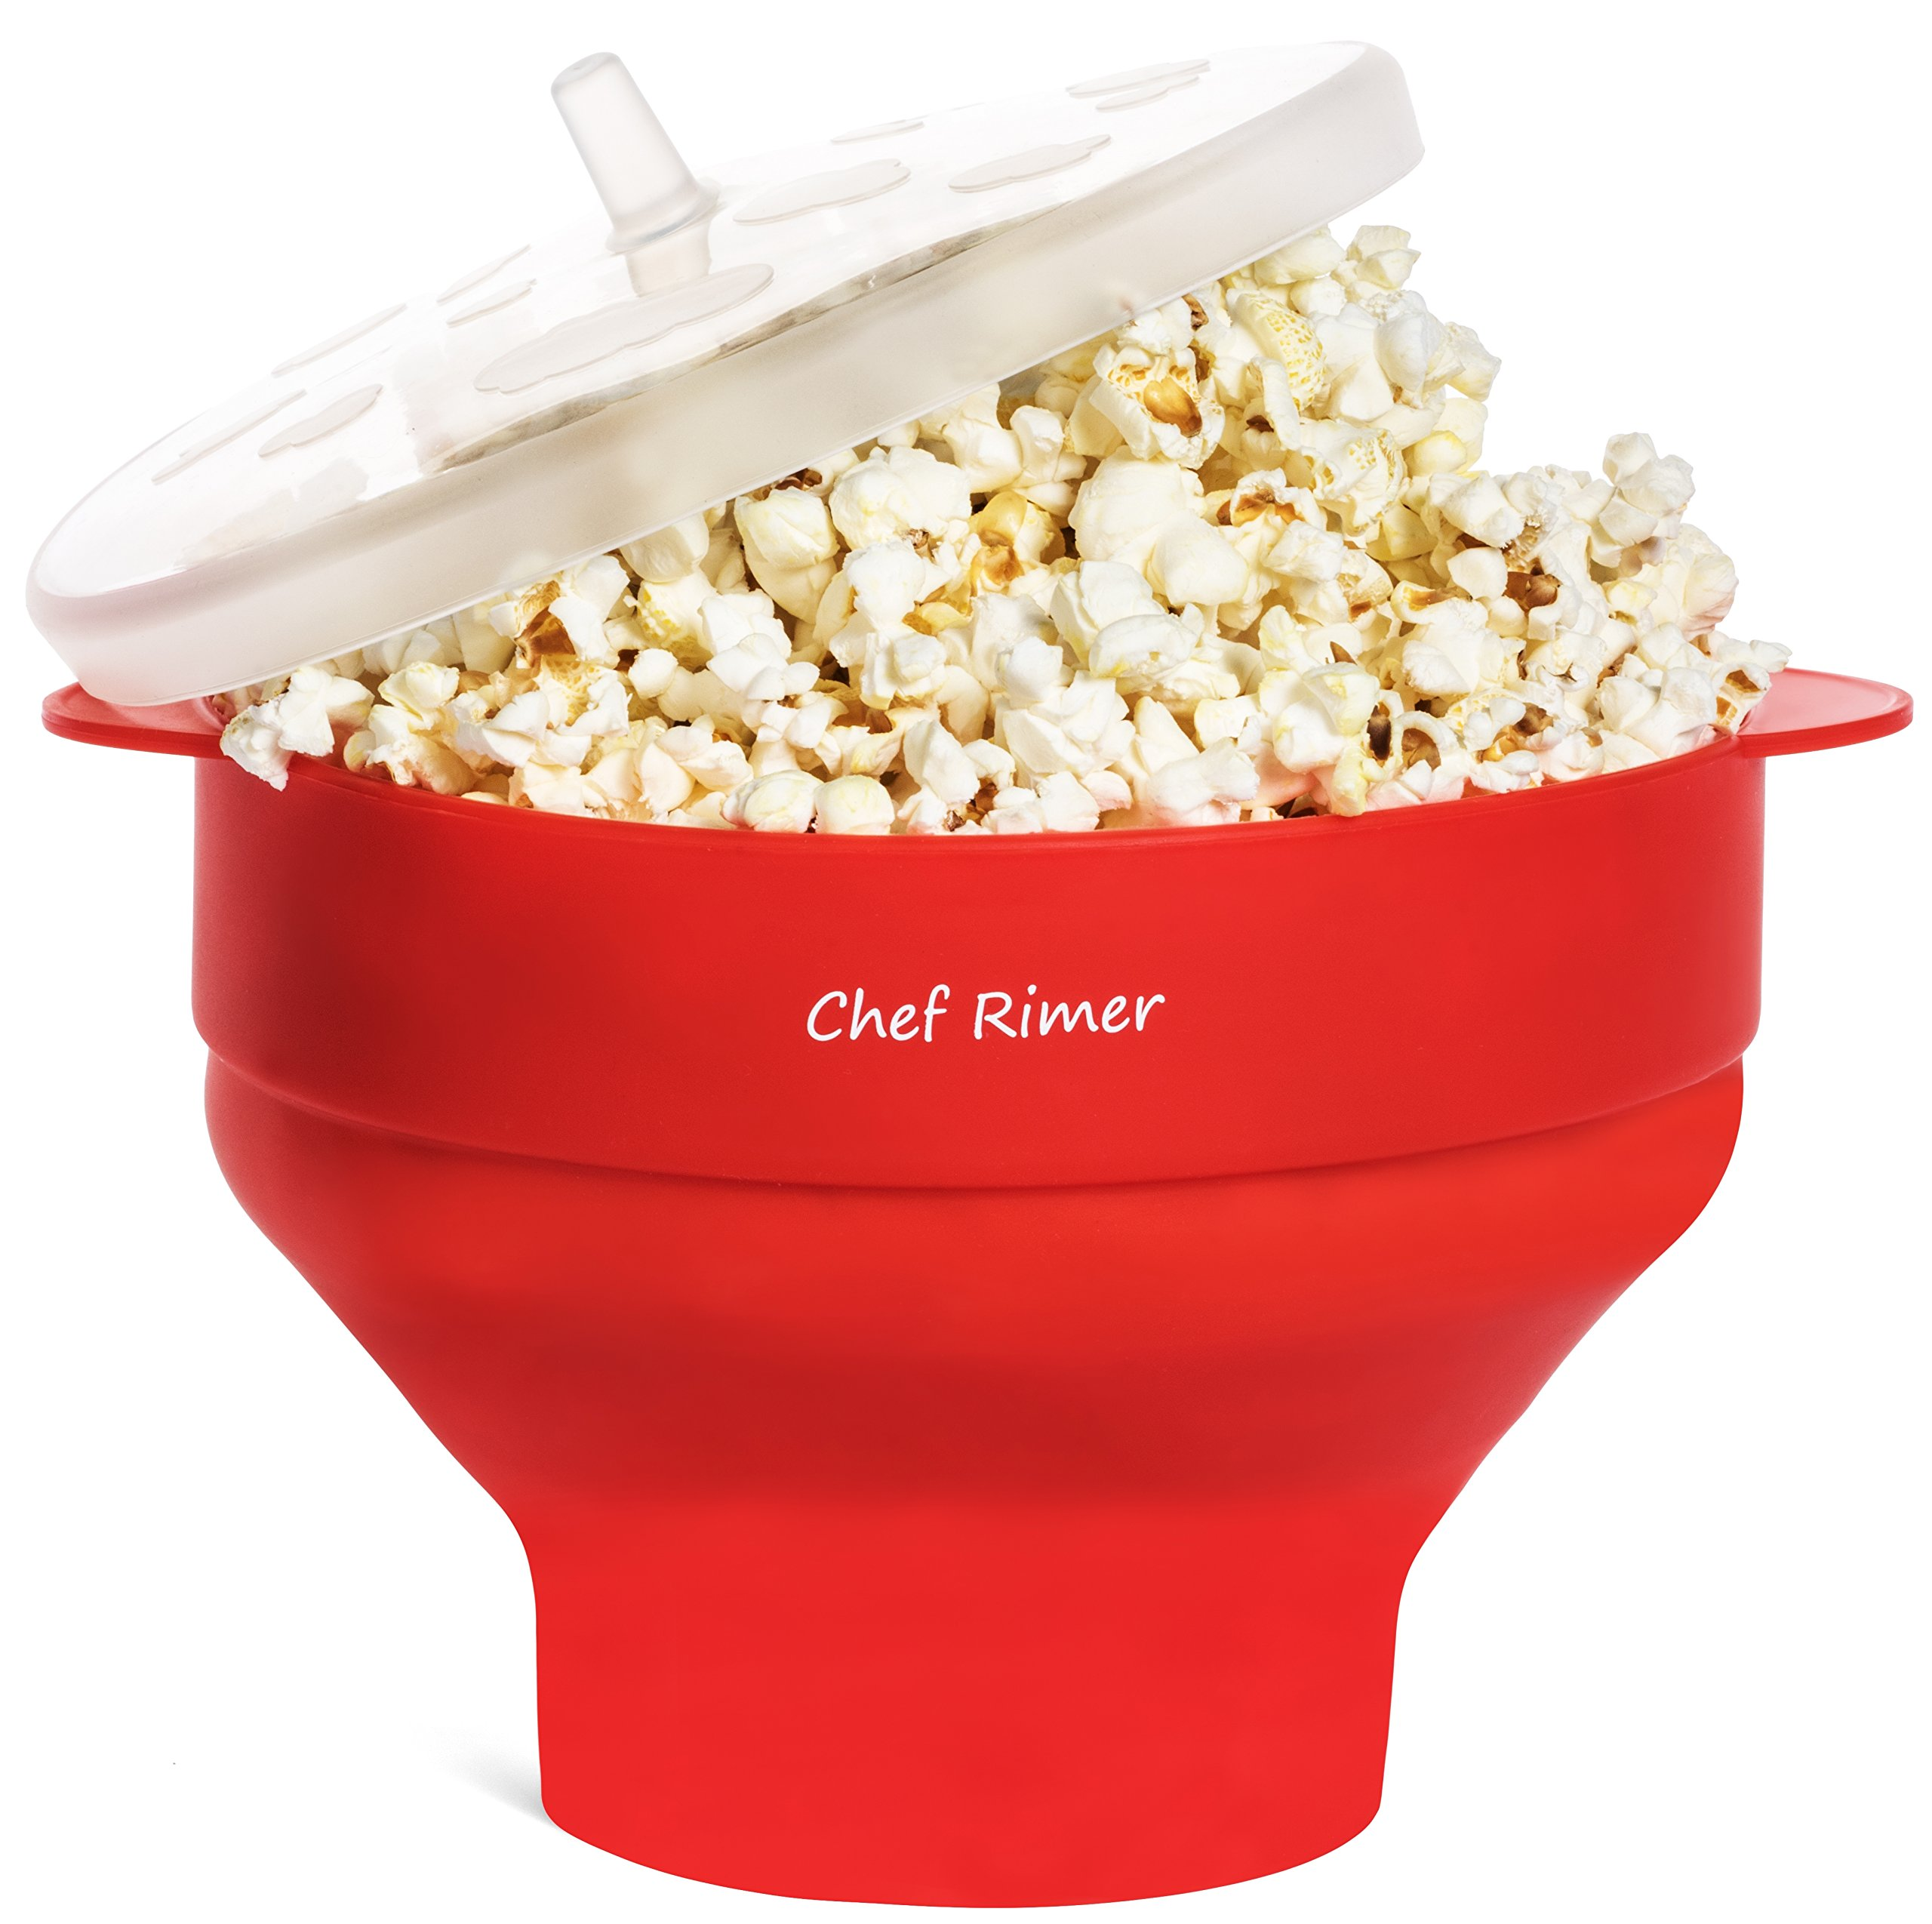 Chef Rimer Microwave Popcorn Popper Sturdy Convenient Handles Healthy No Oil Silicone Red Collapsible Hot Air Movie Theater Aroma Great Popcorn Maker Machine.BPA PVC Free With Lid